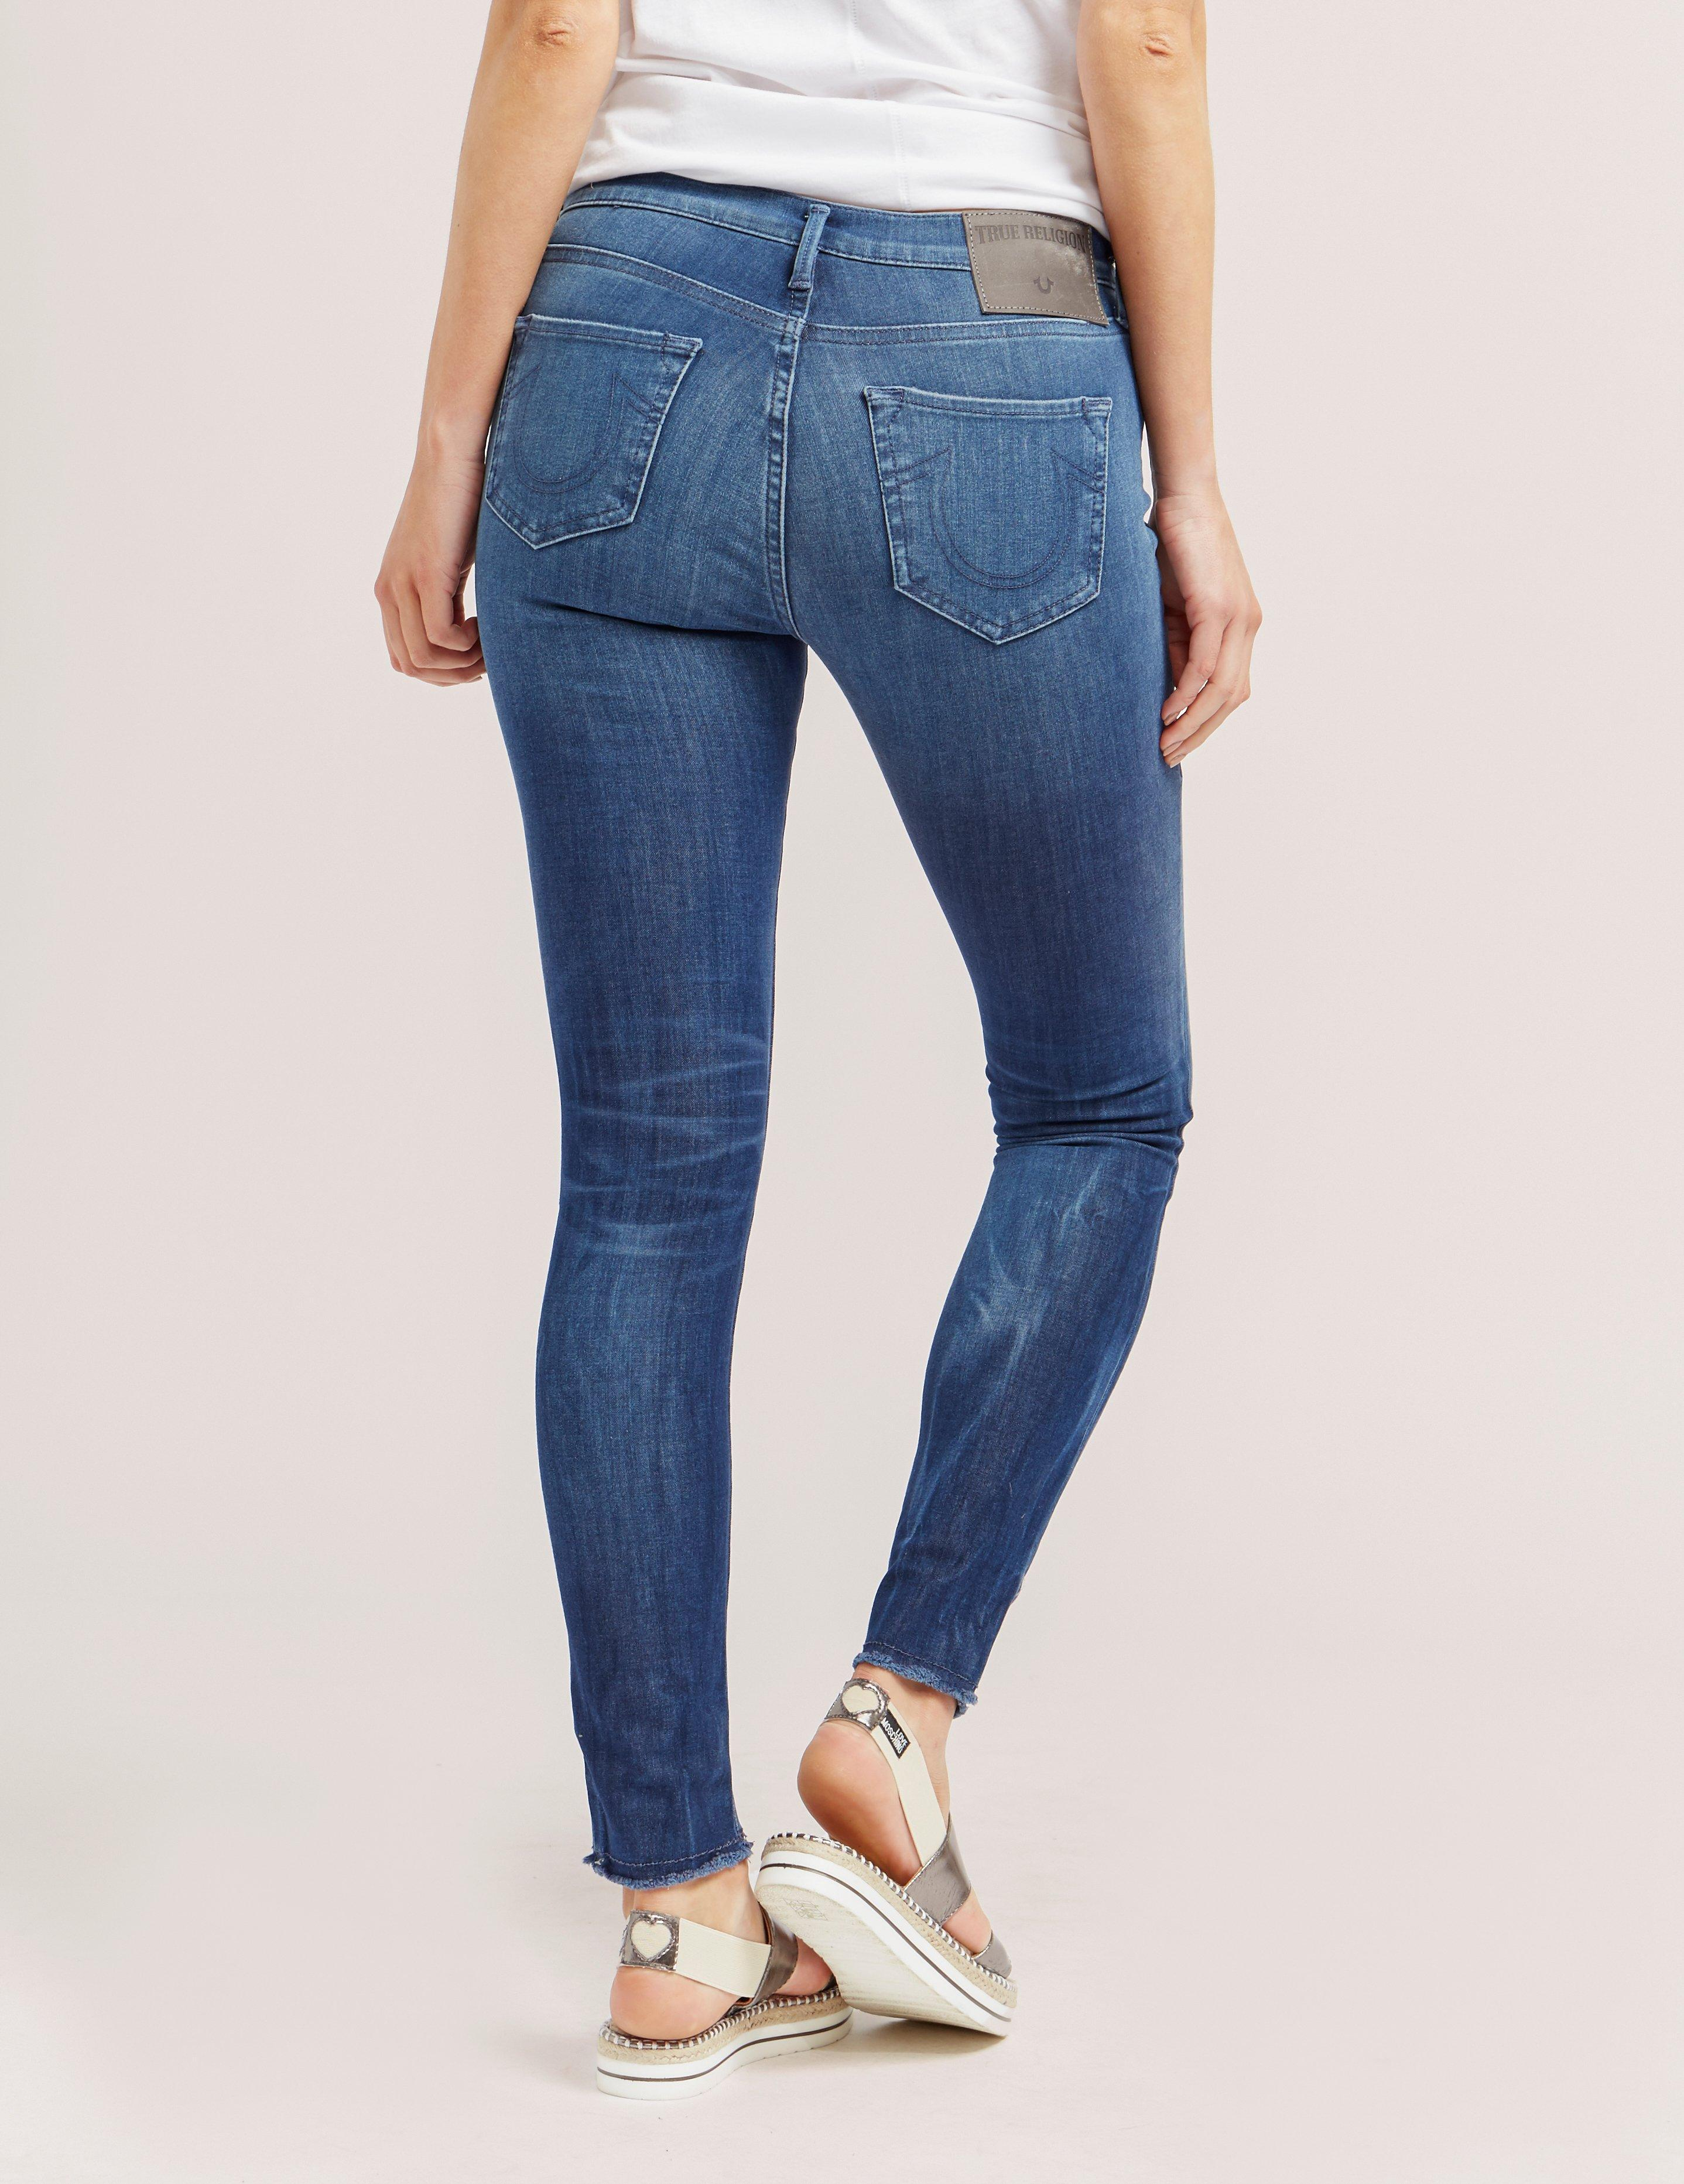 0fb34beb010 True Religion Halle Skinny Jeans Blue in Blue - Save 44% - Lyst